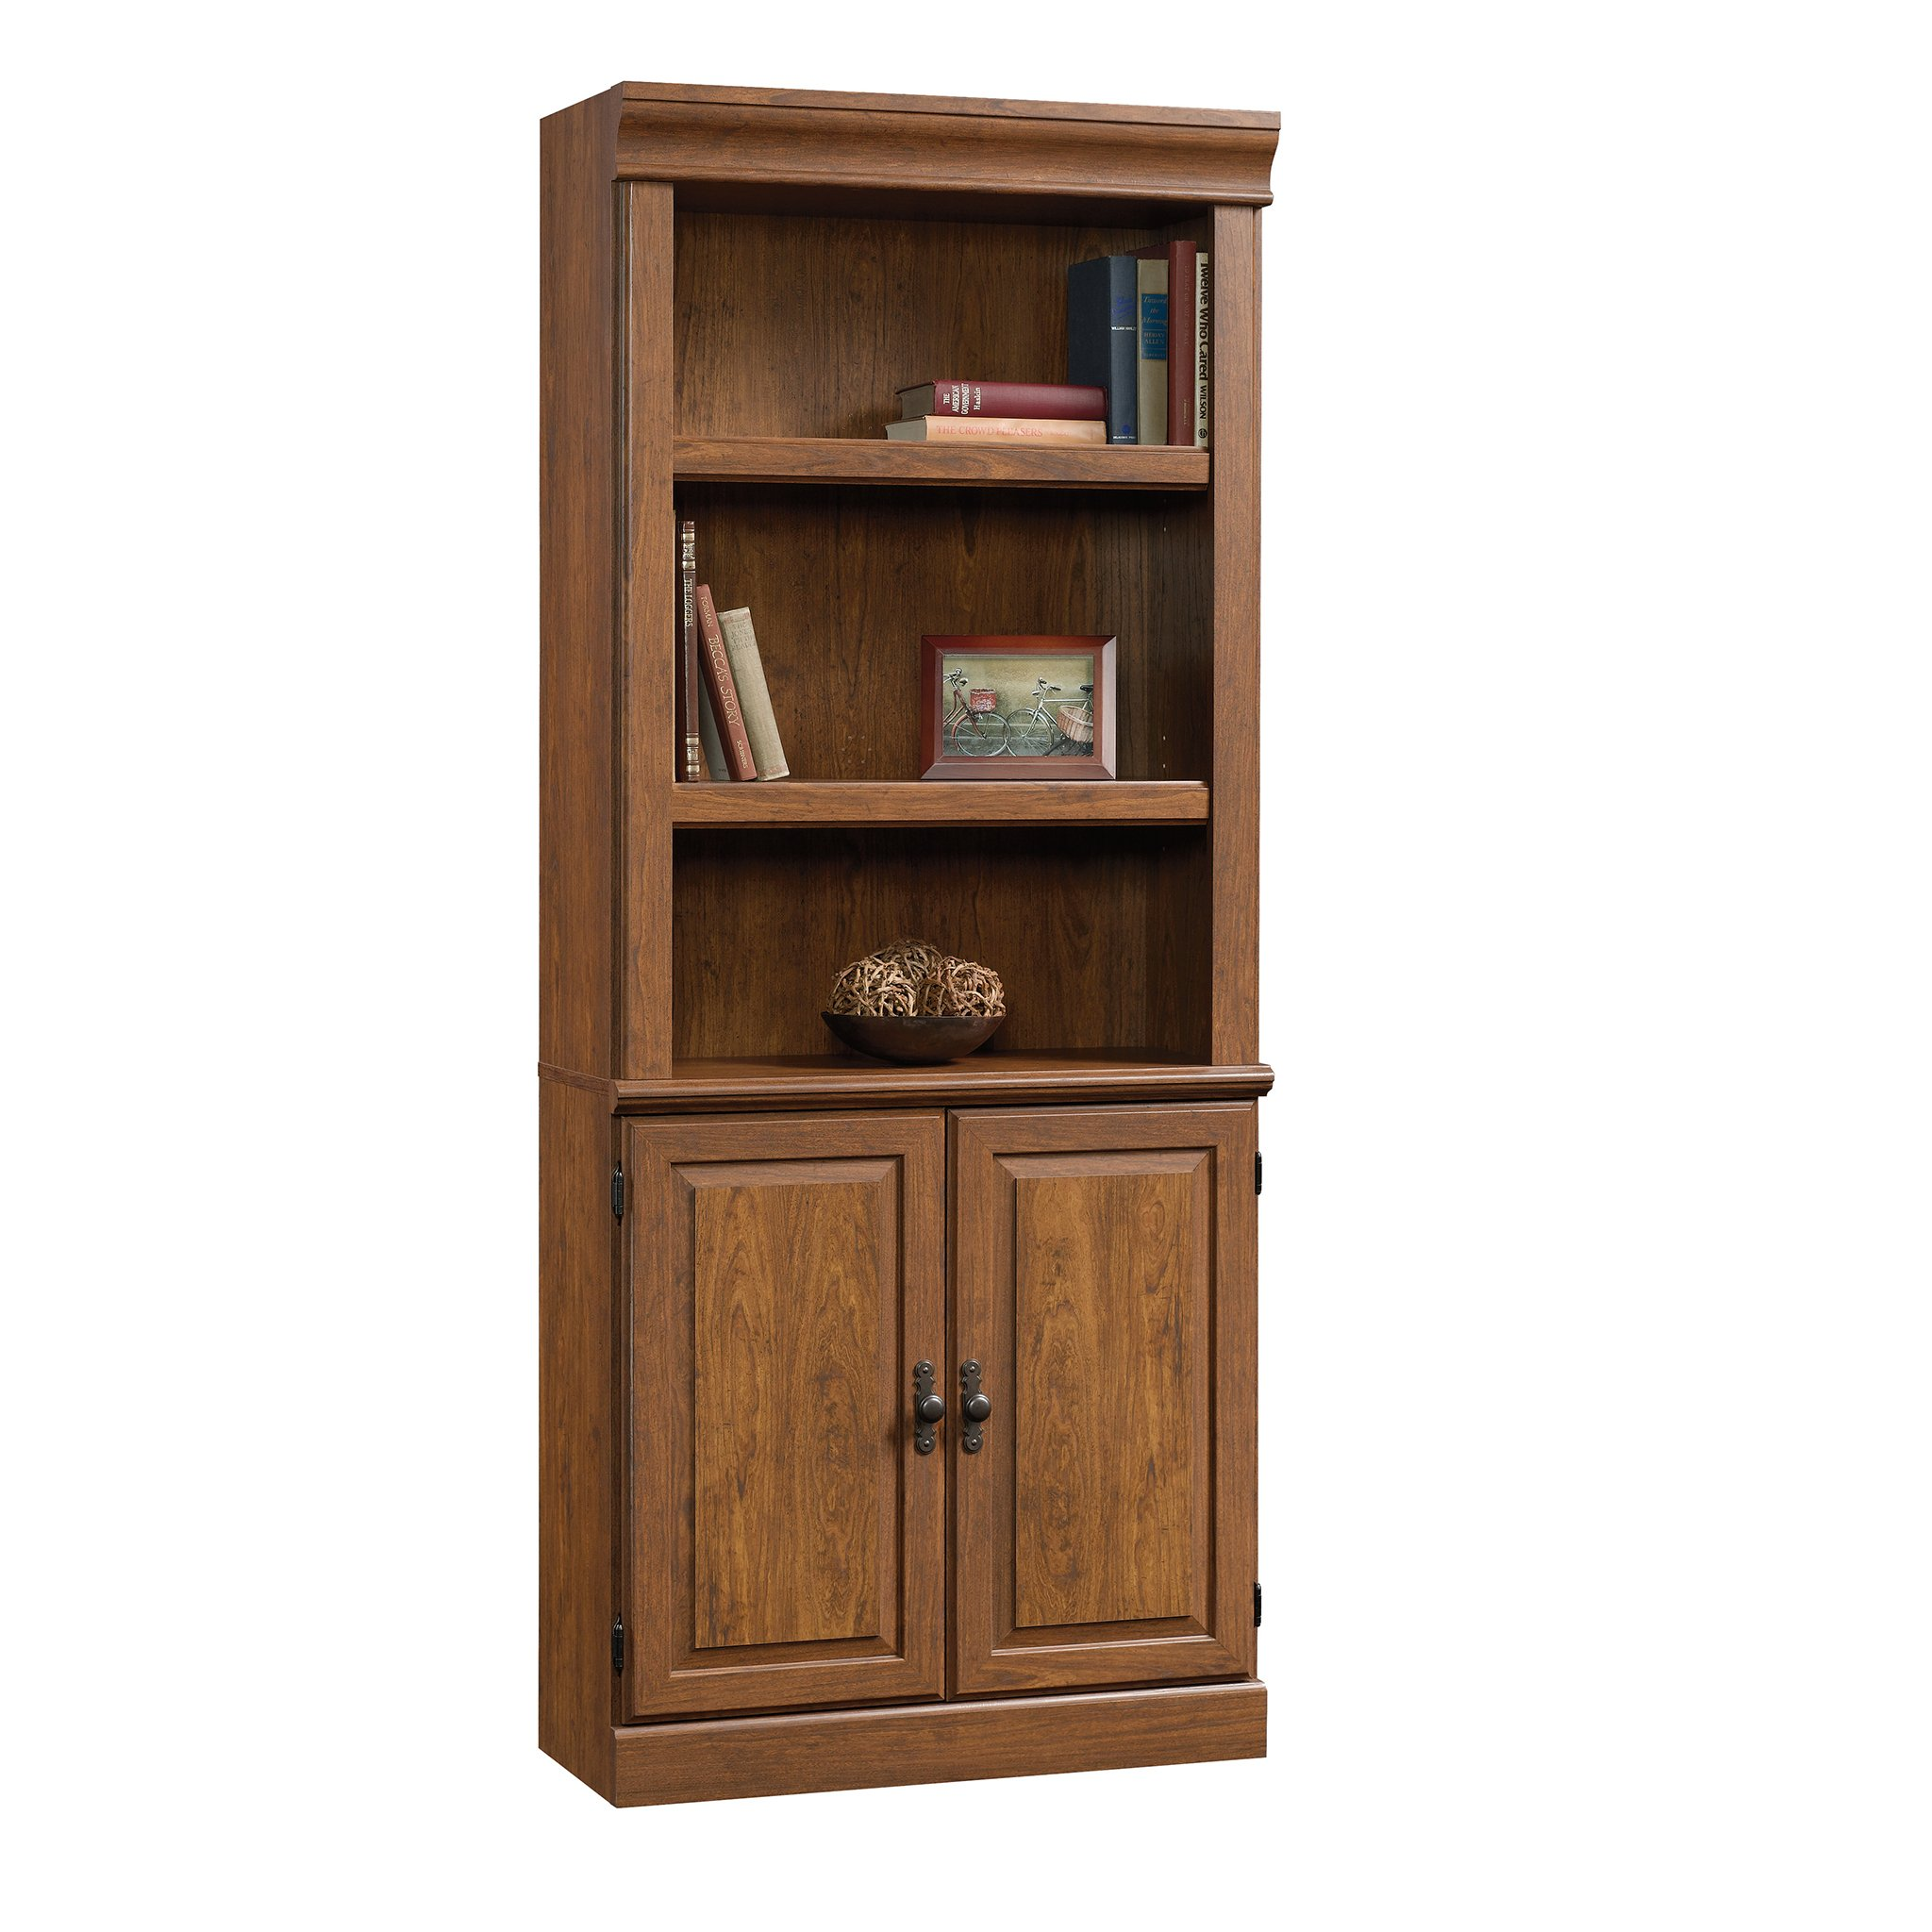 Sauder 418734 Orchard Hills Library with Doors, L: 29.45'' x W: 13.47'' x H: 71.50'', Milled Cherry finish by Sauder (Image #1)